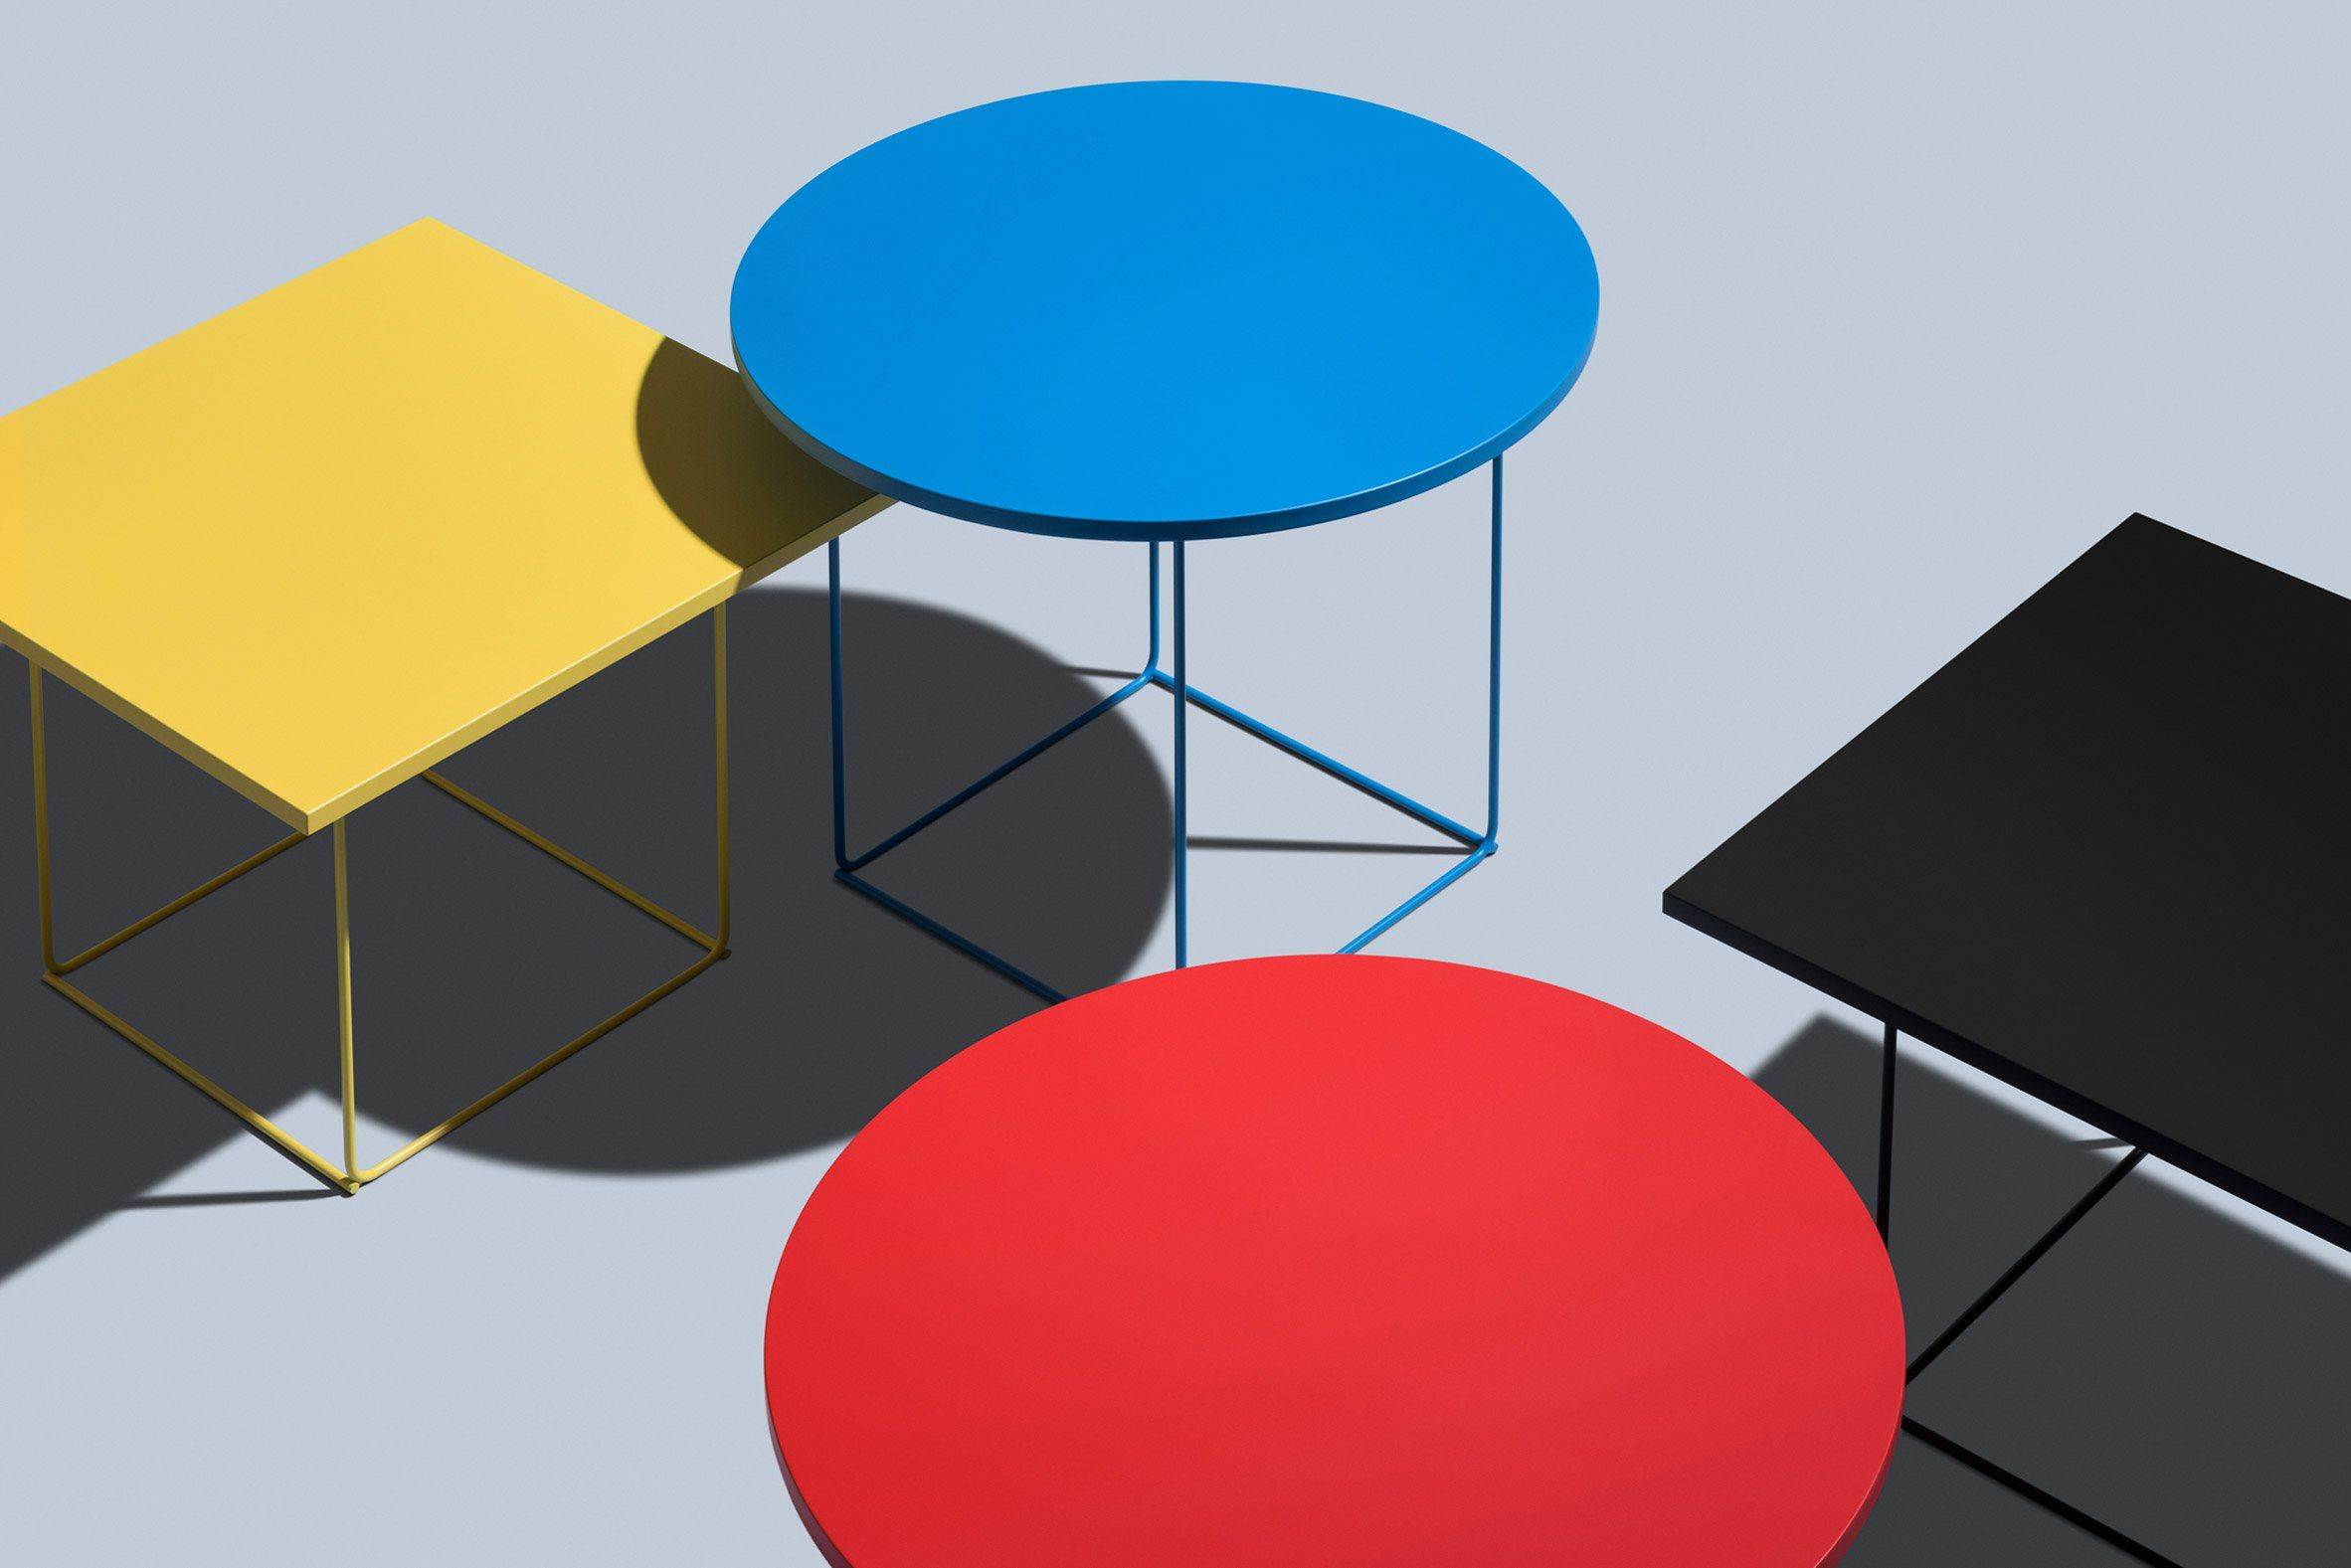 Farben des wohnraums 2018 berlin brand loehr launches architectureinspired furniture